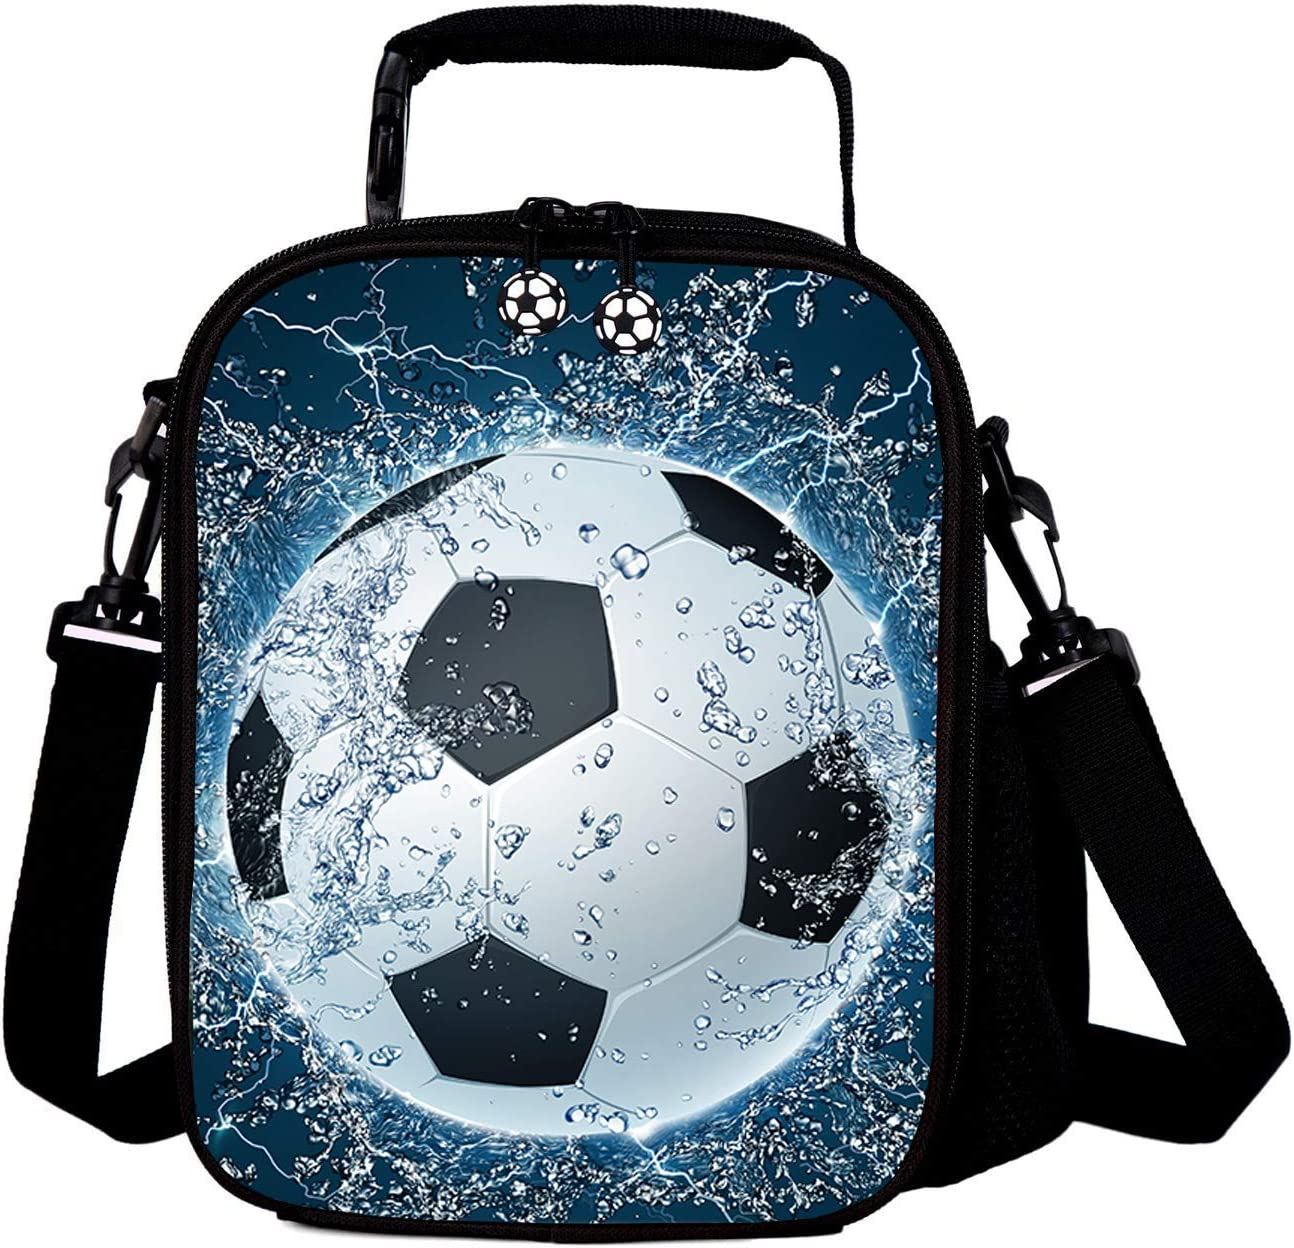 7-Mi Kids Lunch Box Bag, Portable Reusable Insulated Lunch Totes for Kids Boys 3D Football Lunch Box Girls Washable Crossbody Lunch Container Food Carrier For 2 To 7Years,Football Printed